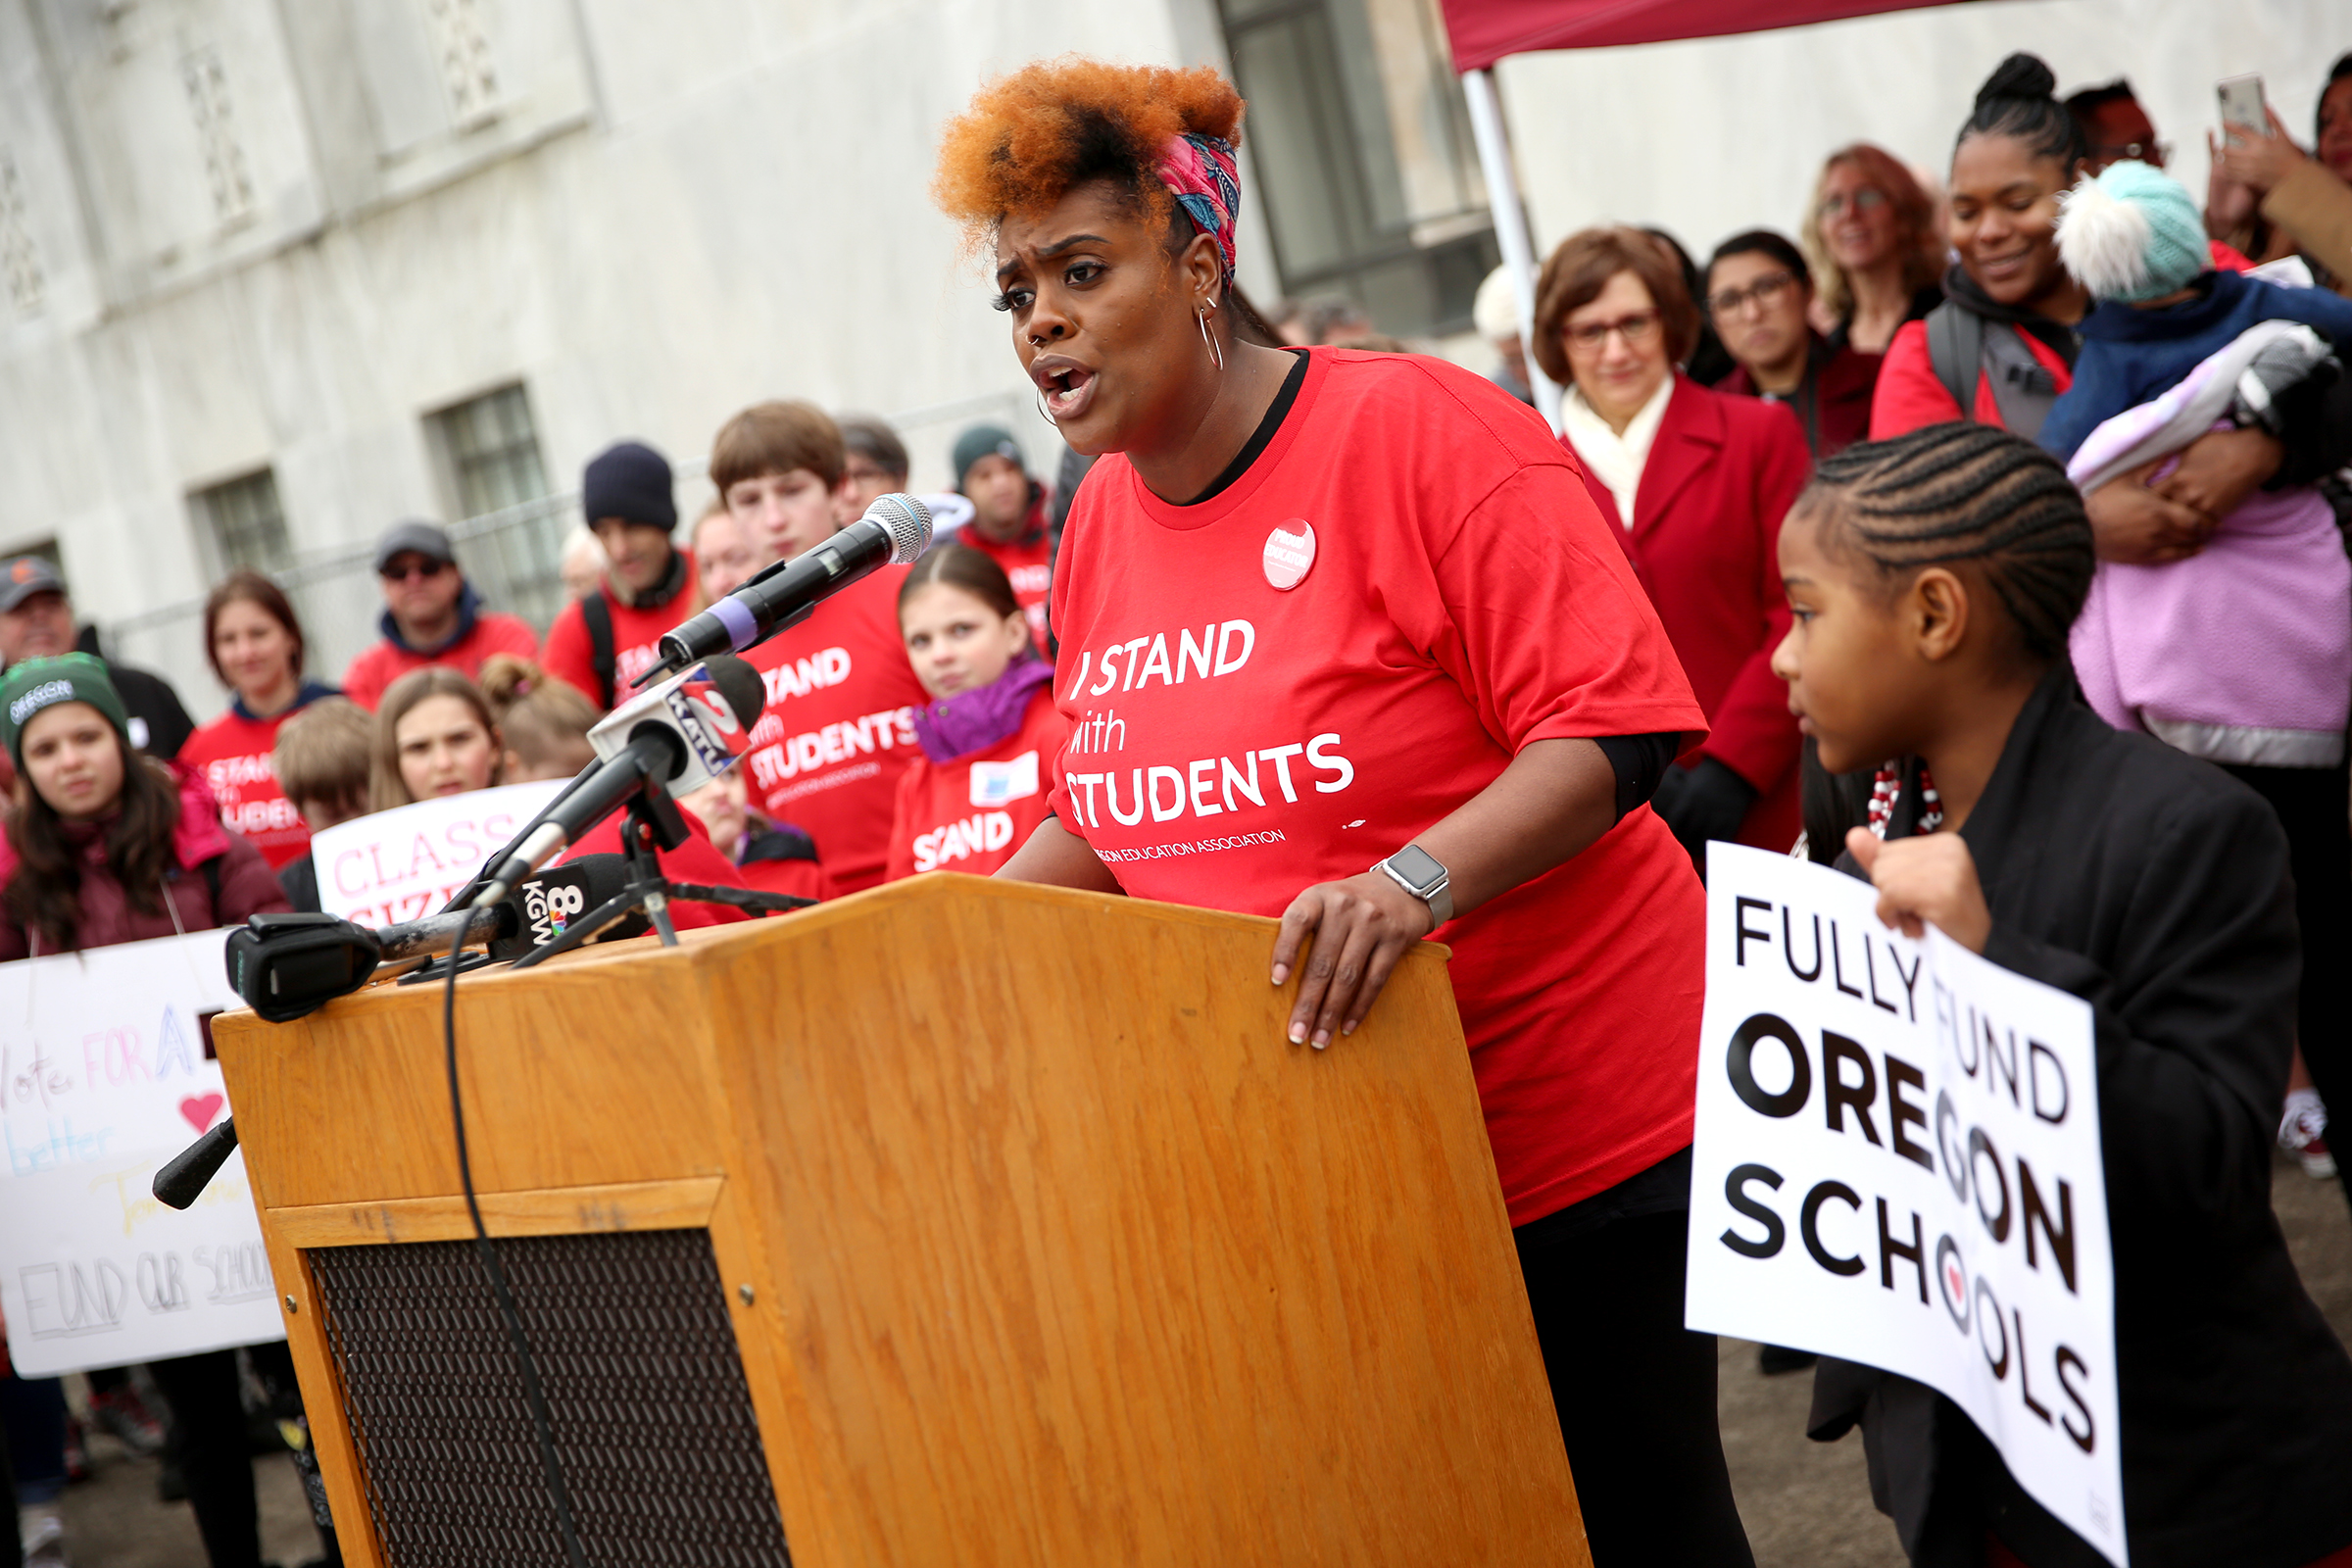 Portland fourth grade teacher Nichole Watson speaks before supporters from across the state marched around the Oregon State Capitol in support of public education on Monday, Feb. 18, 2019.